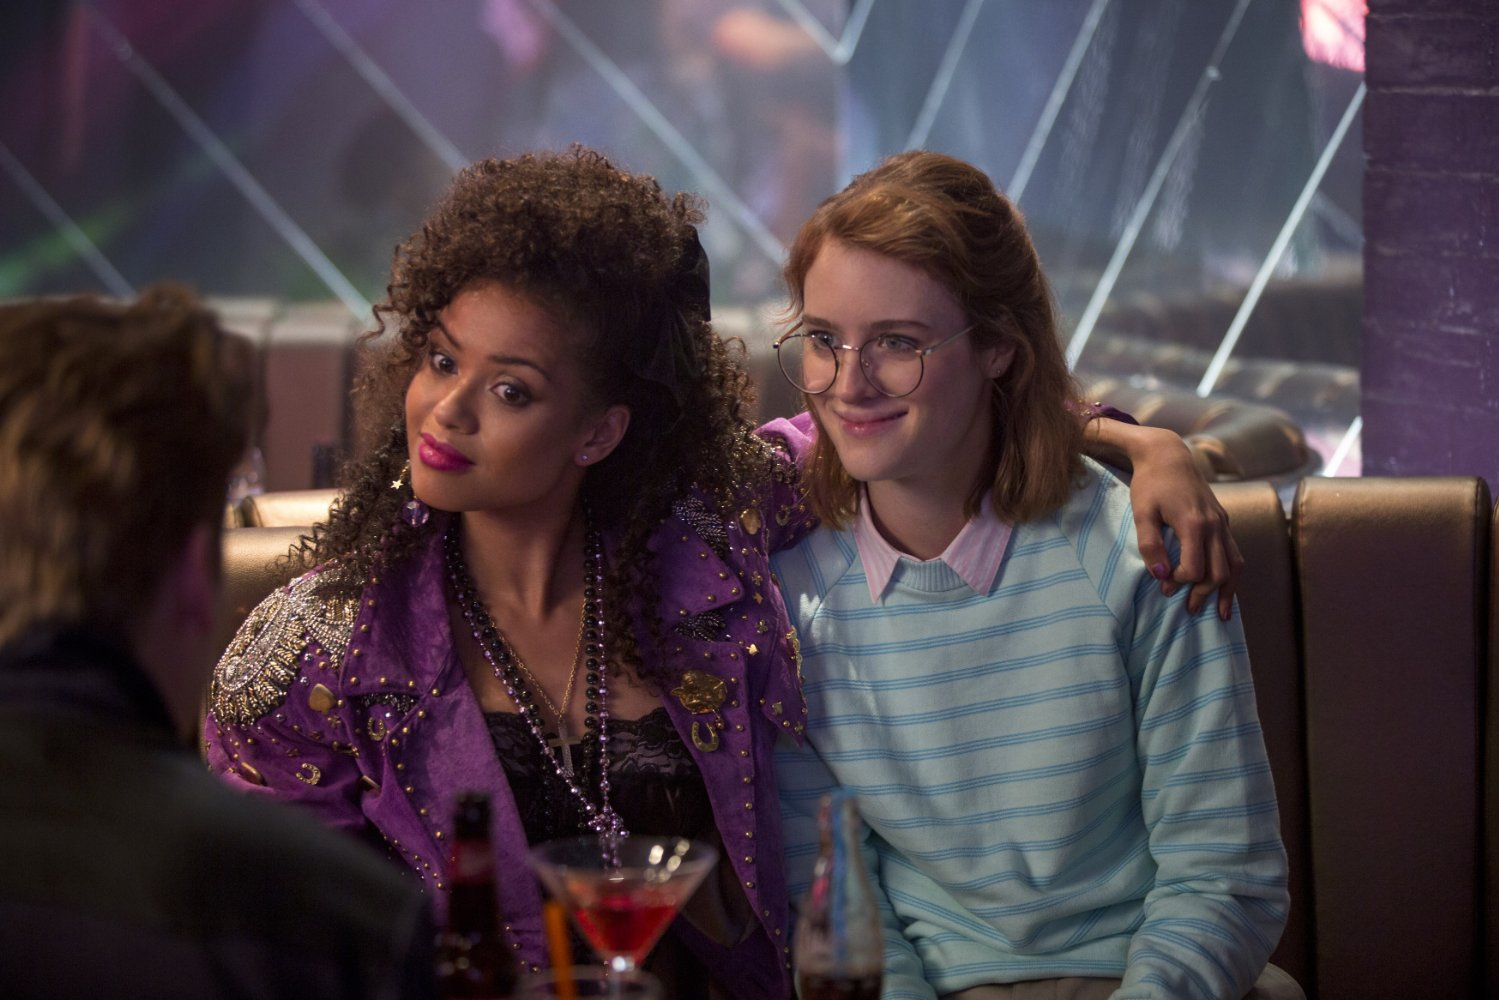 El Soundtrack De San Junipero De Black Mirror Tendrá Su